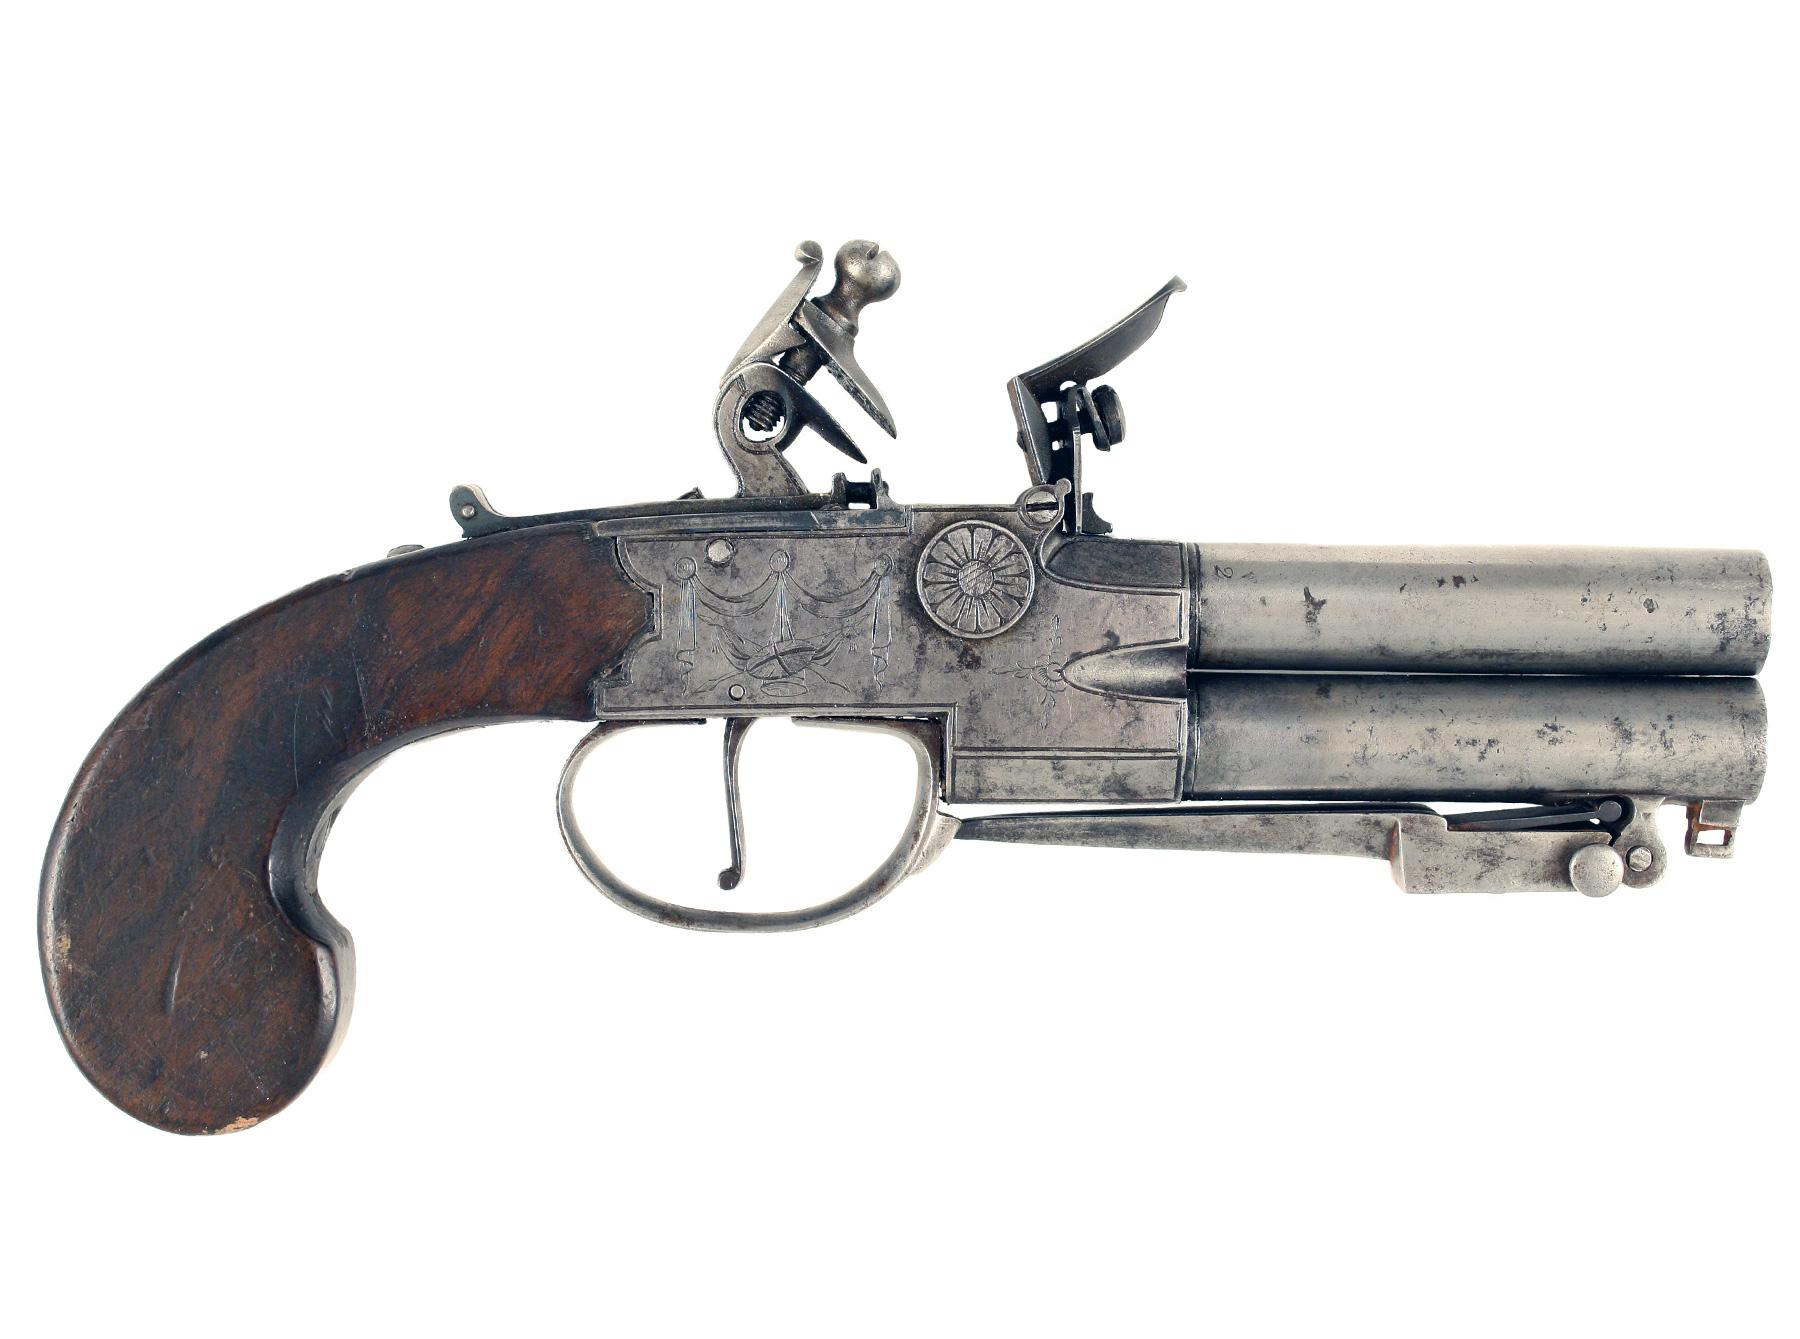 A Tap-Action Pistol With Bayonet